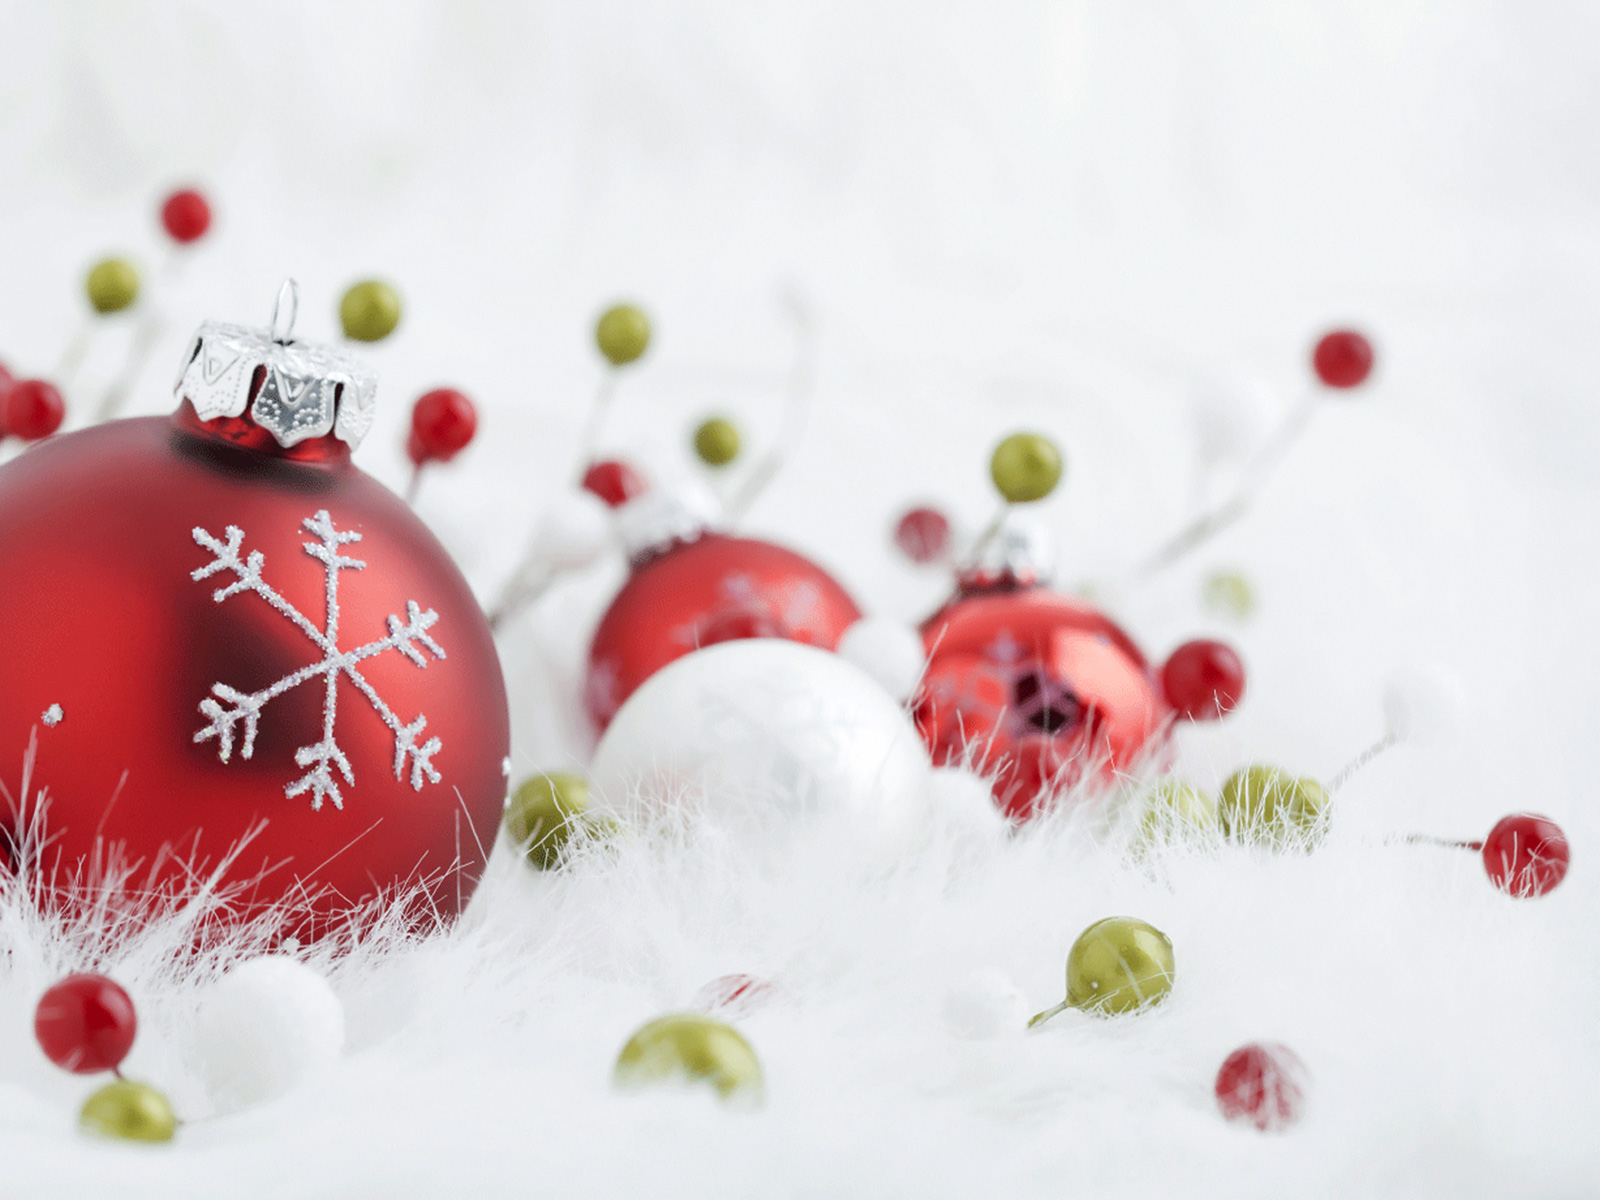 Merry Christmas 3D Backgrounds Christian Wallpapers 1600x1200